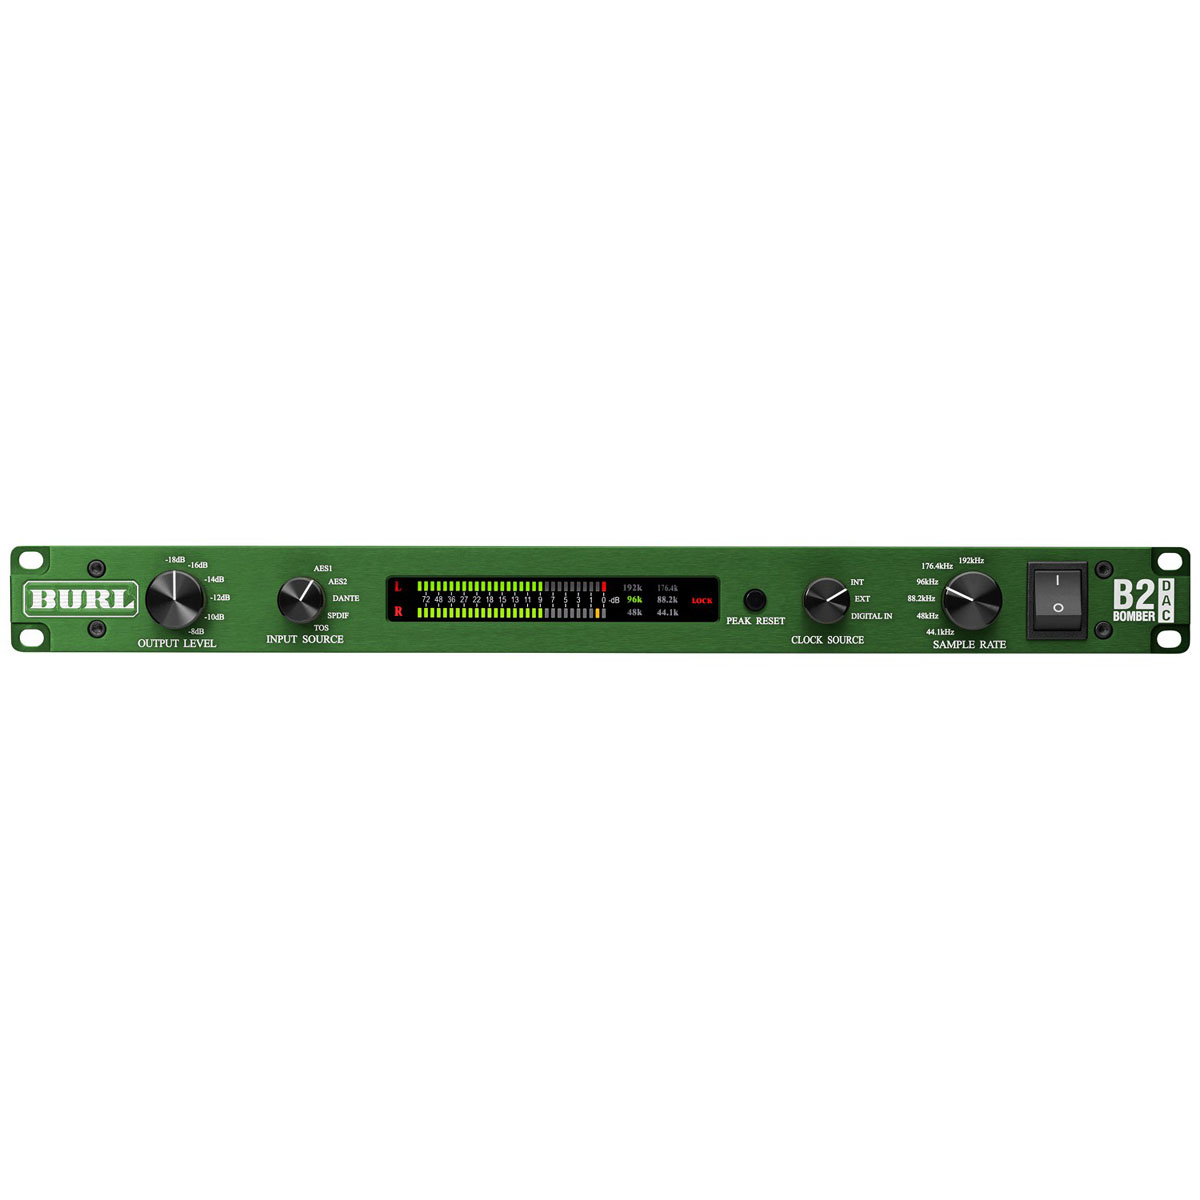 Burl Audio B2 Bomber Dac Two Channel Digital Analog Converter To Converters Microcontrollers